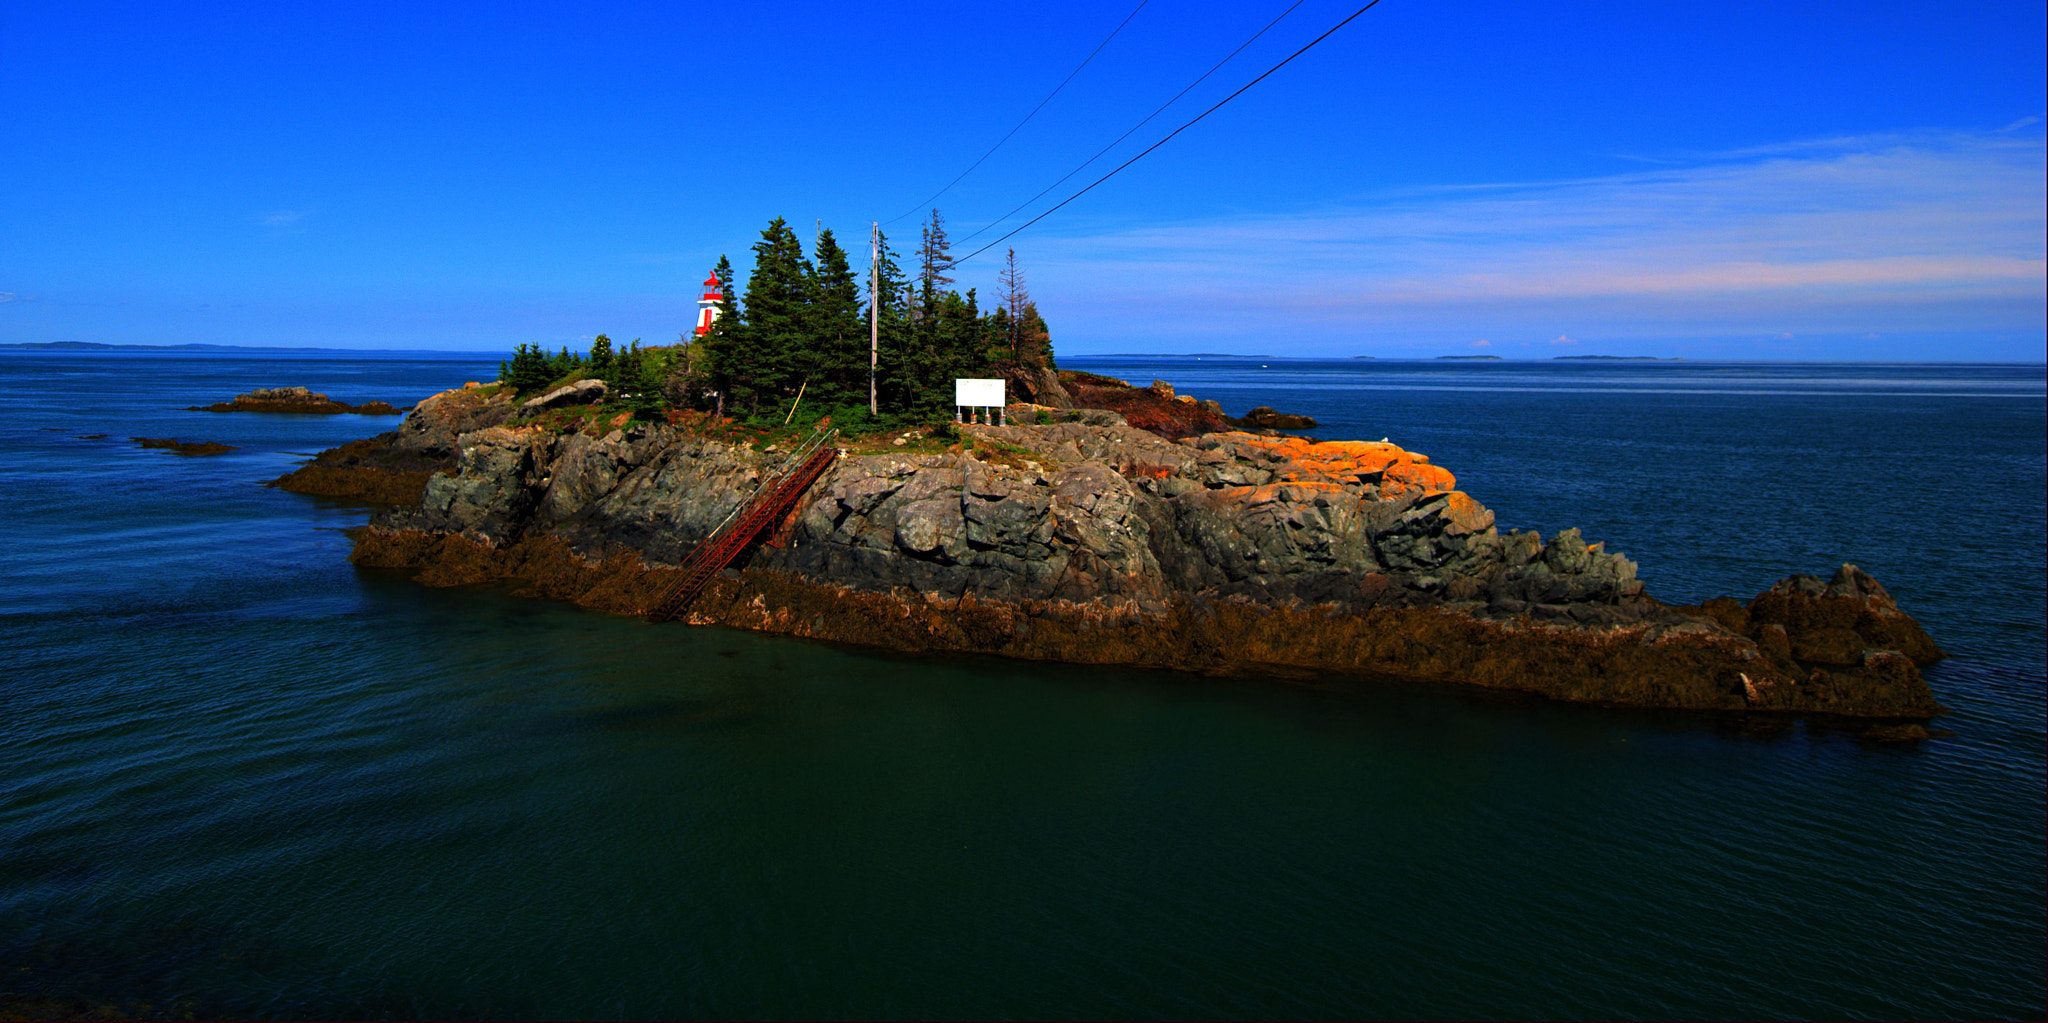 Photograph Bay of Fundy, Canada by Kurt Tavares on 500px